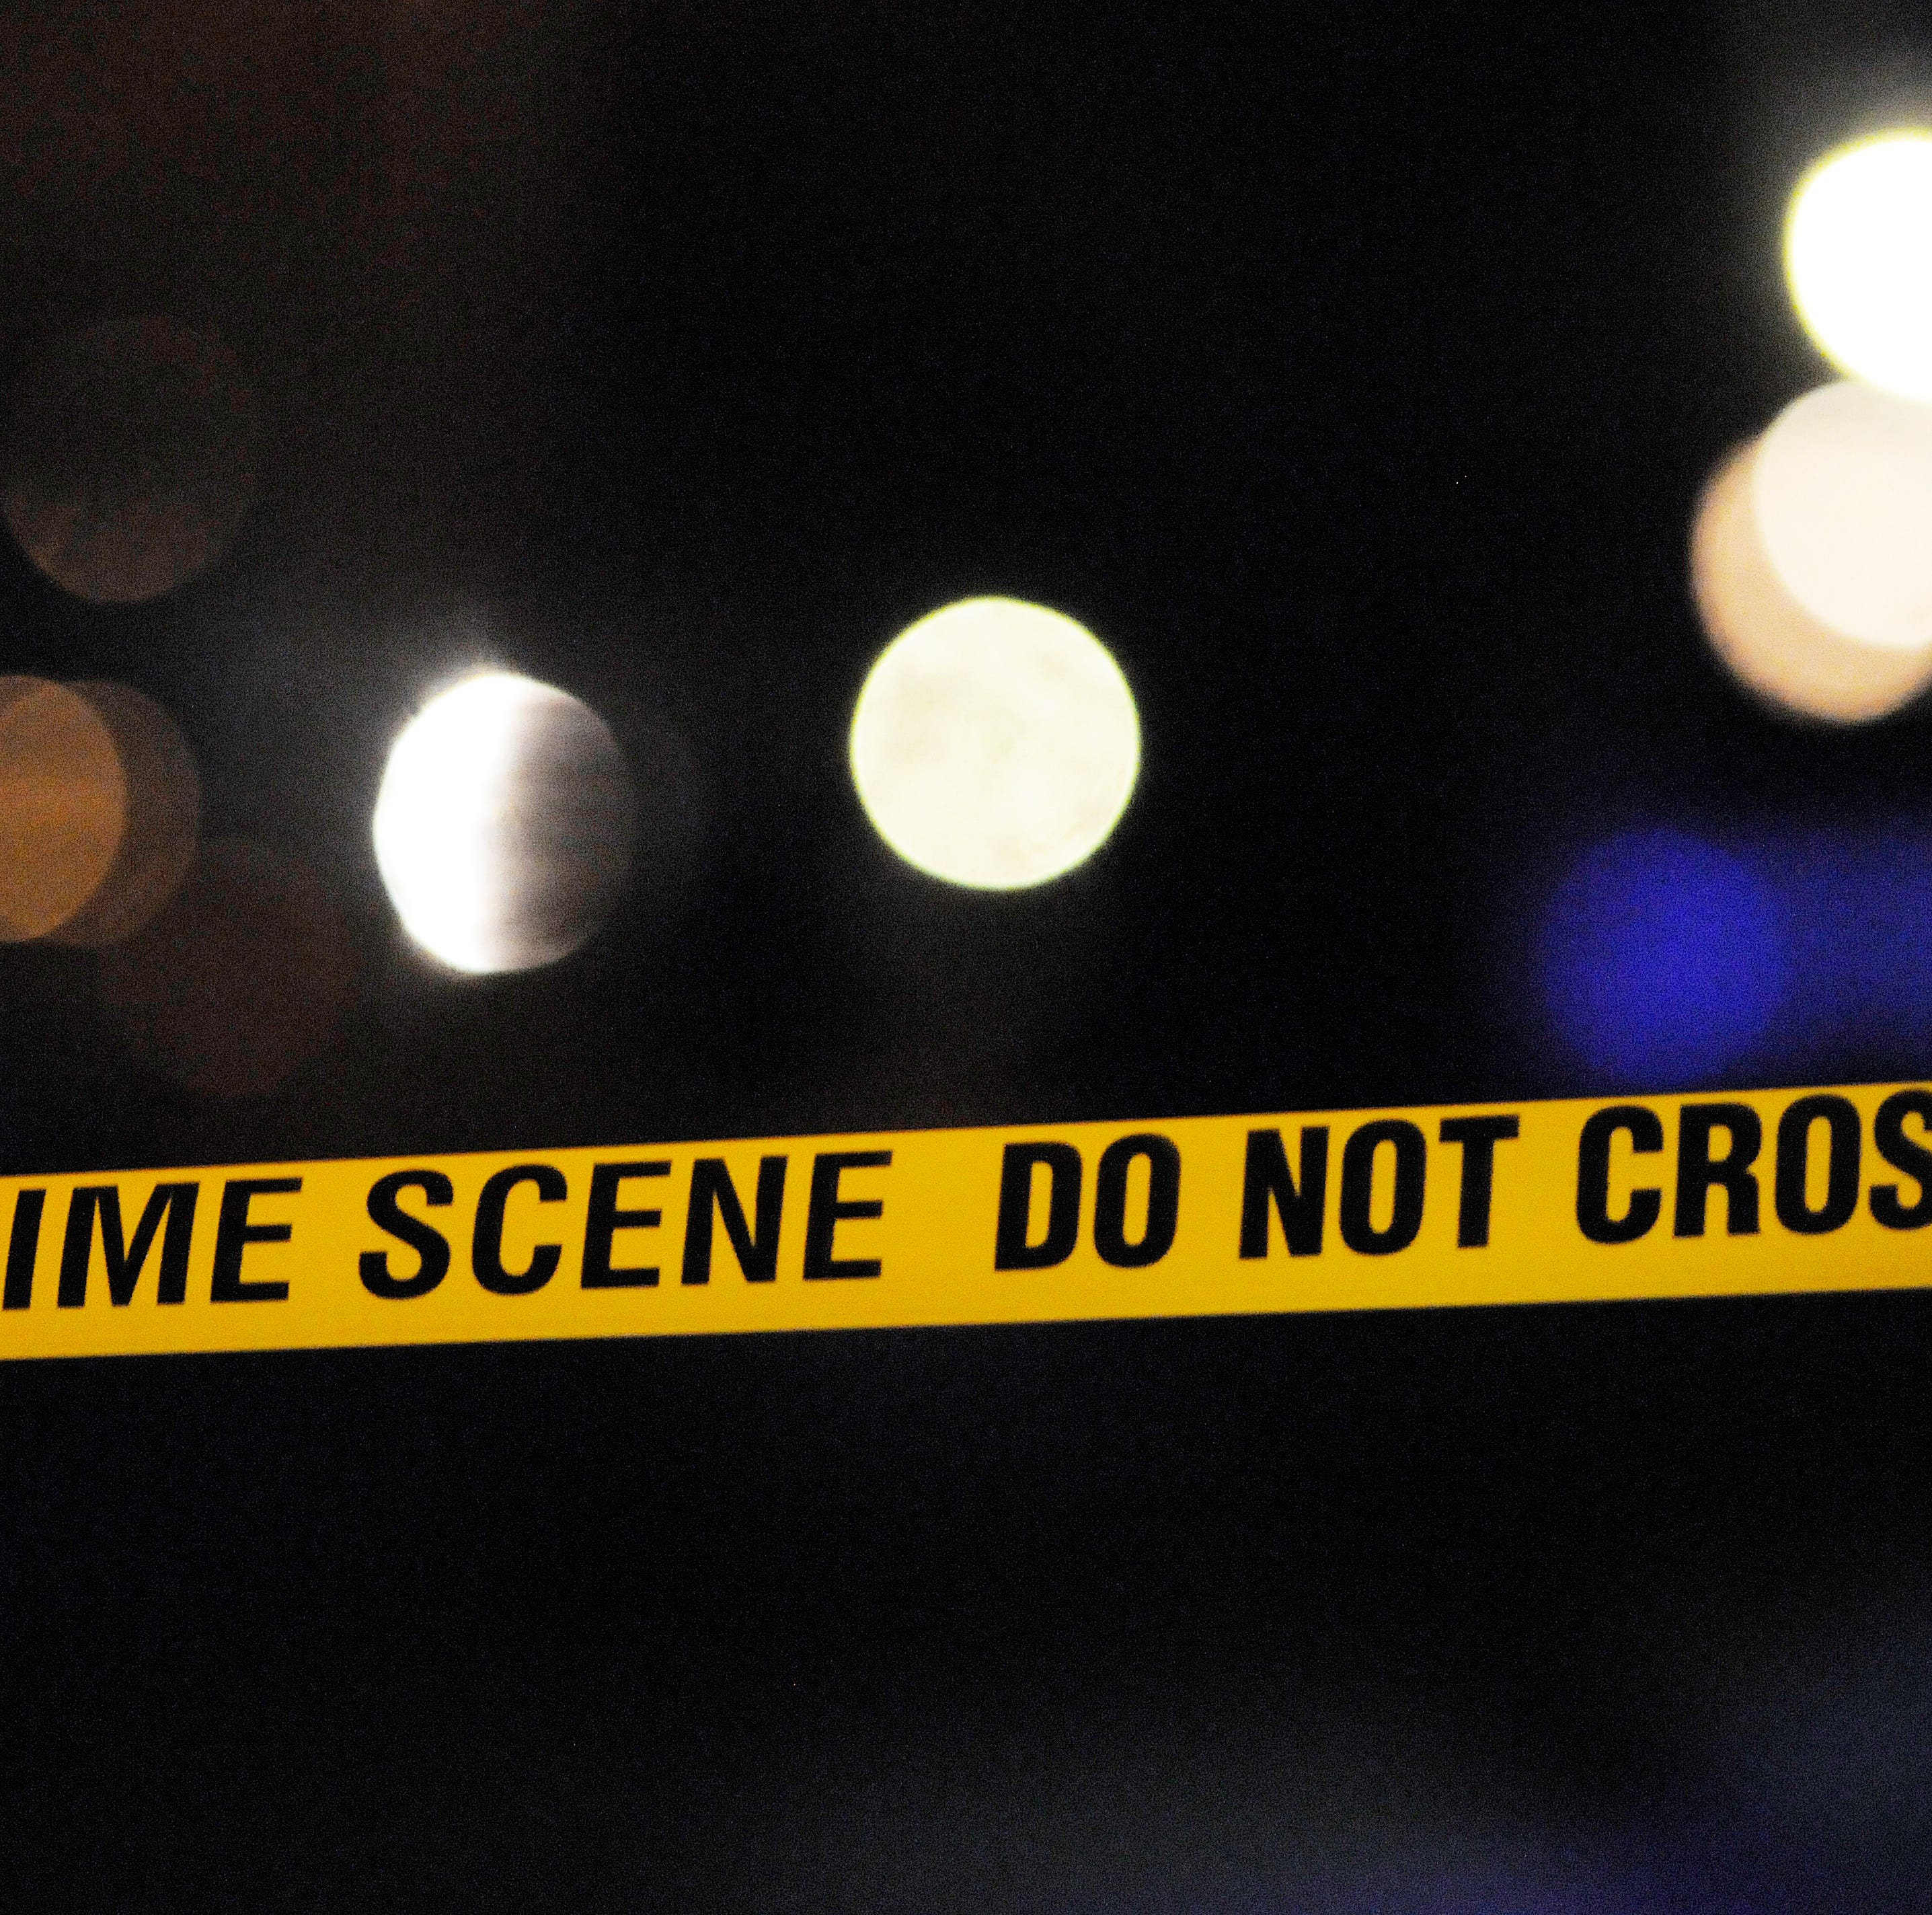 3 shot, 1 killed in west side drive-by